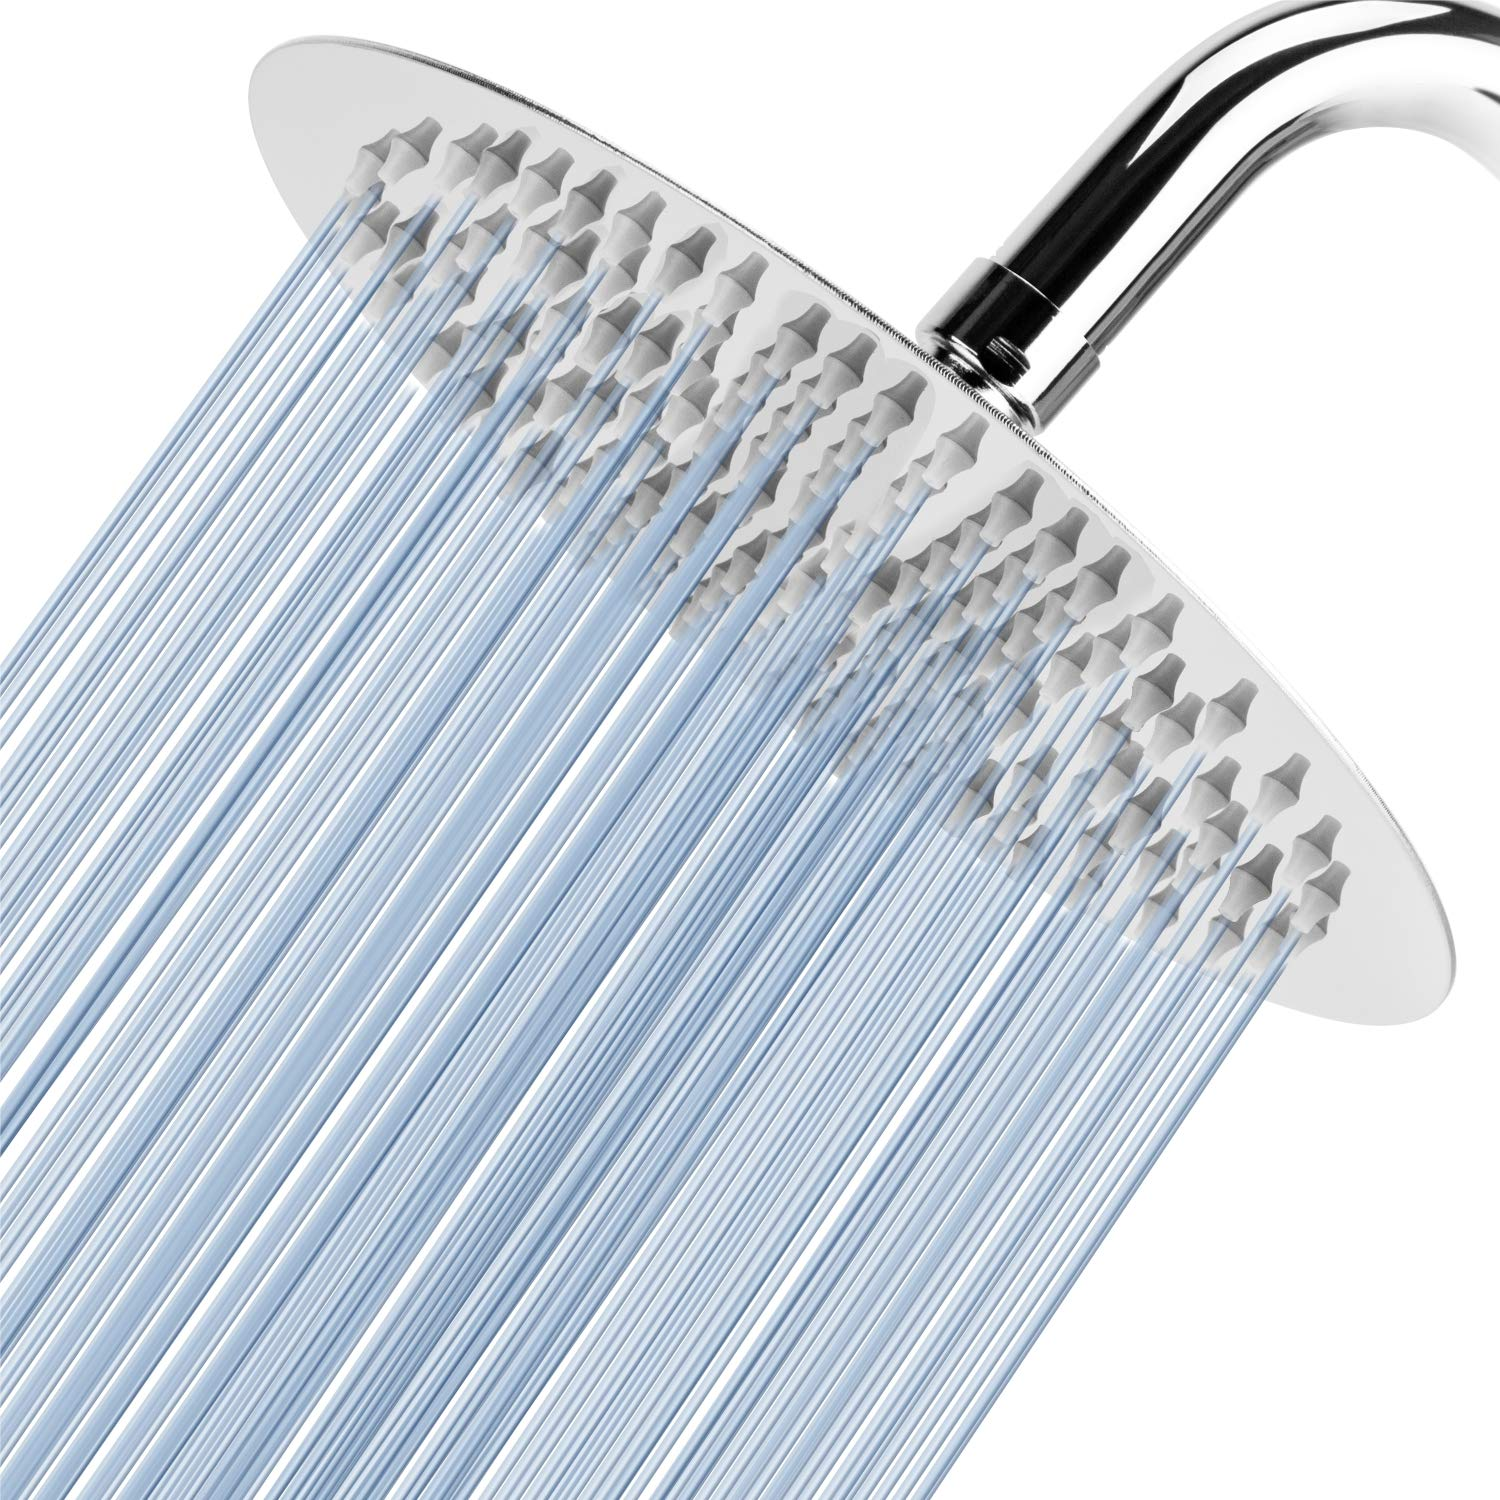 Voolan 8'' High Pressure Rain Shower Head, 304 Stainless Steel, Comfortable Shower Experience Even at Low Water Flow